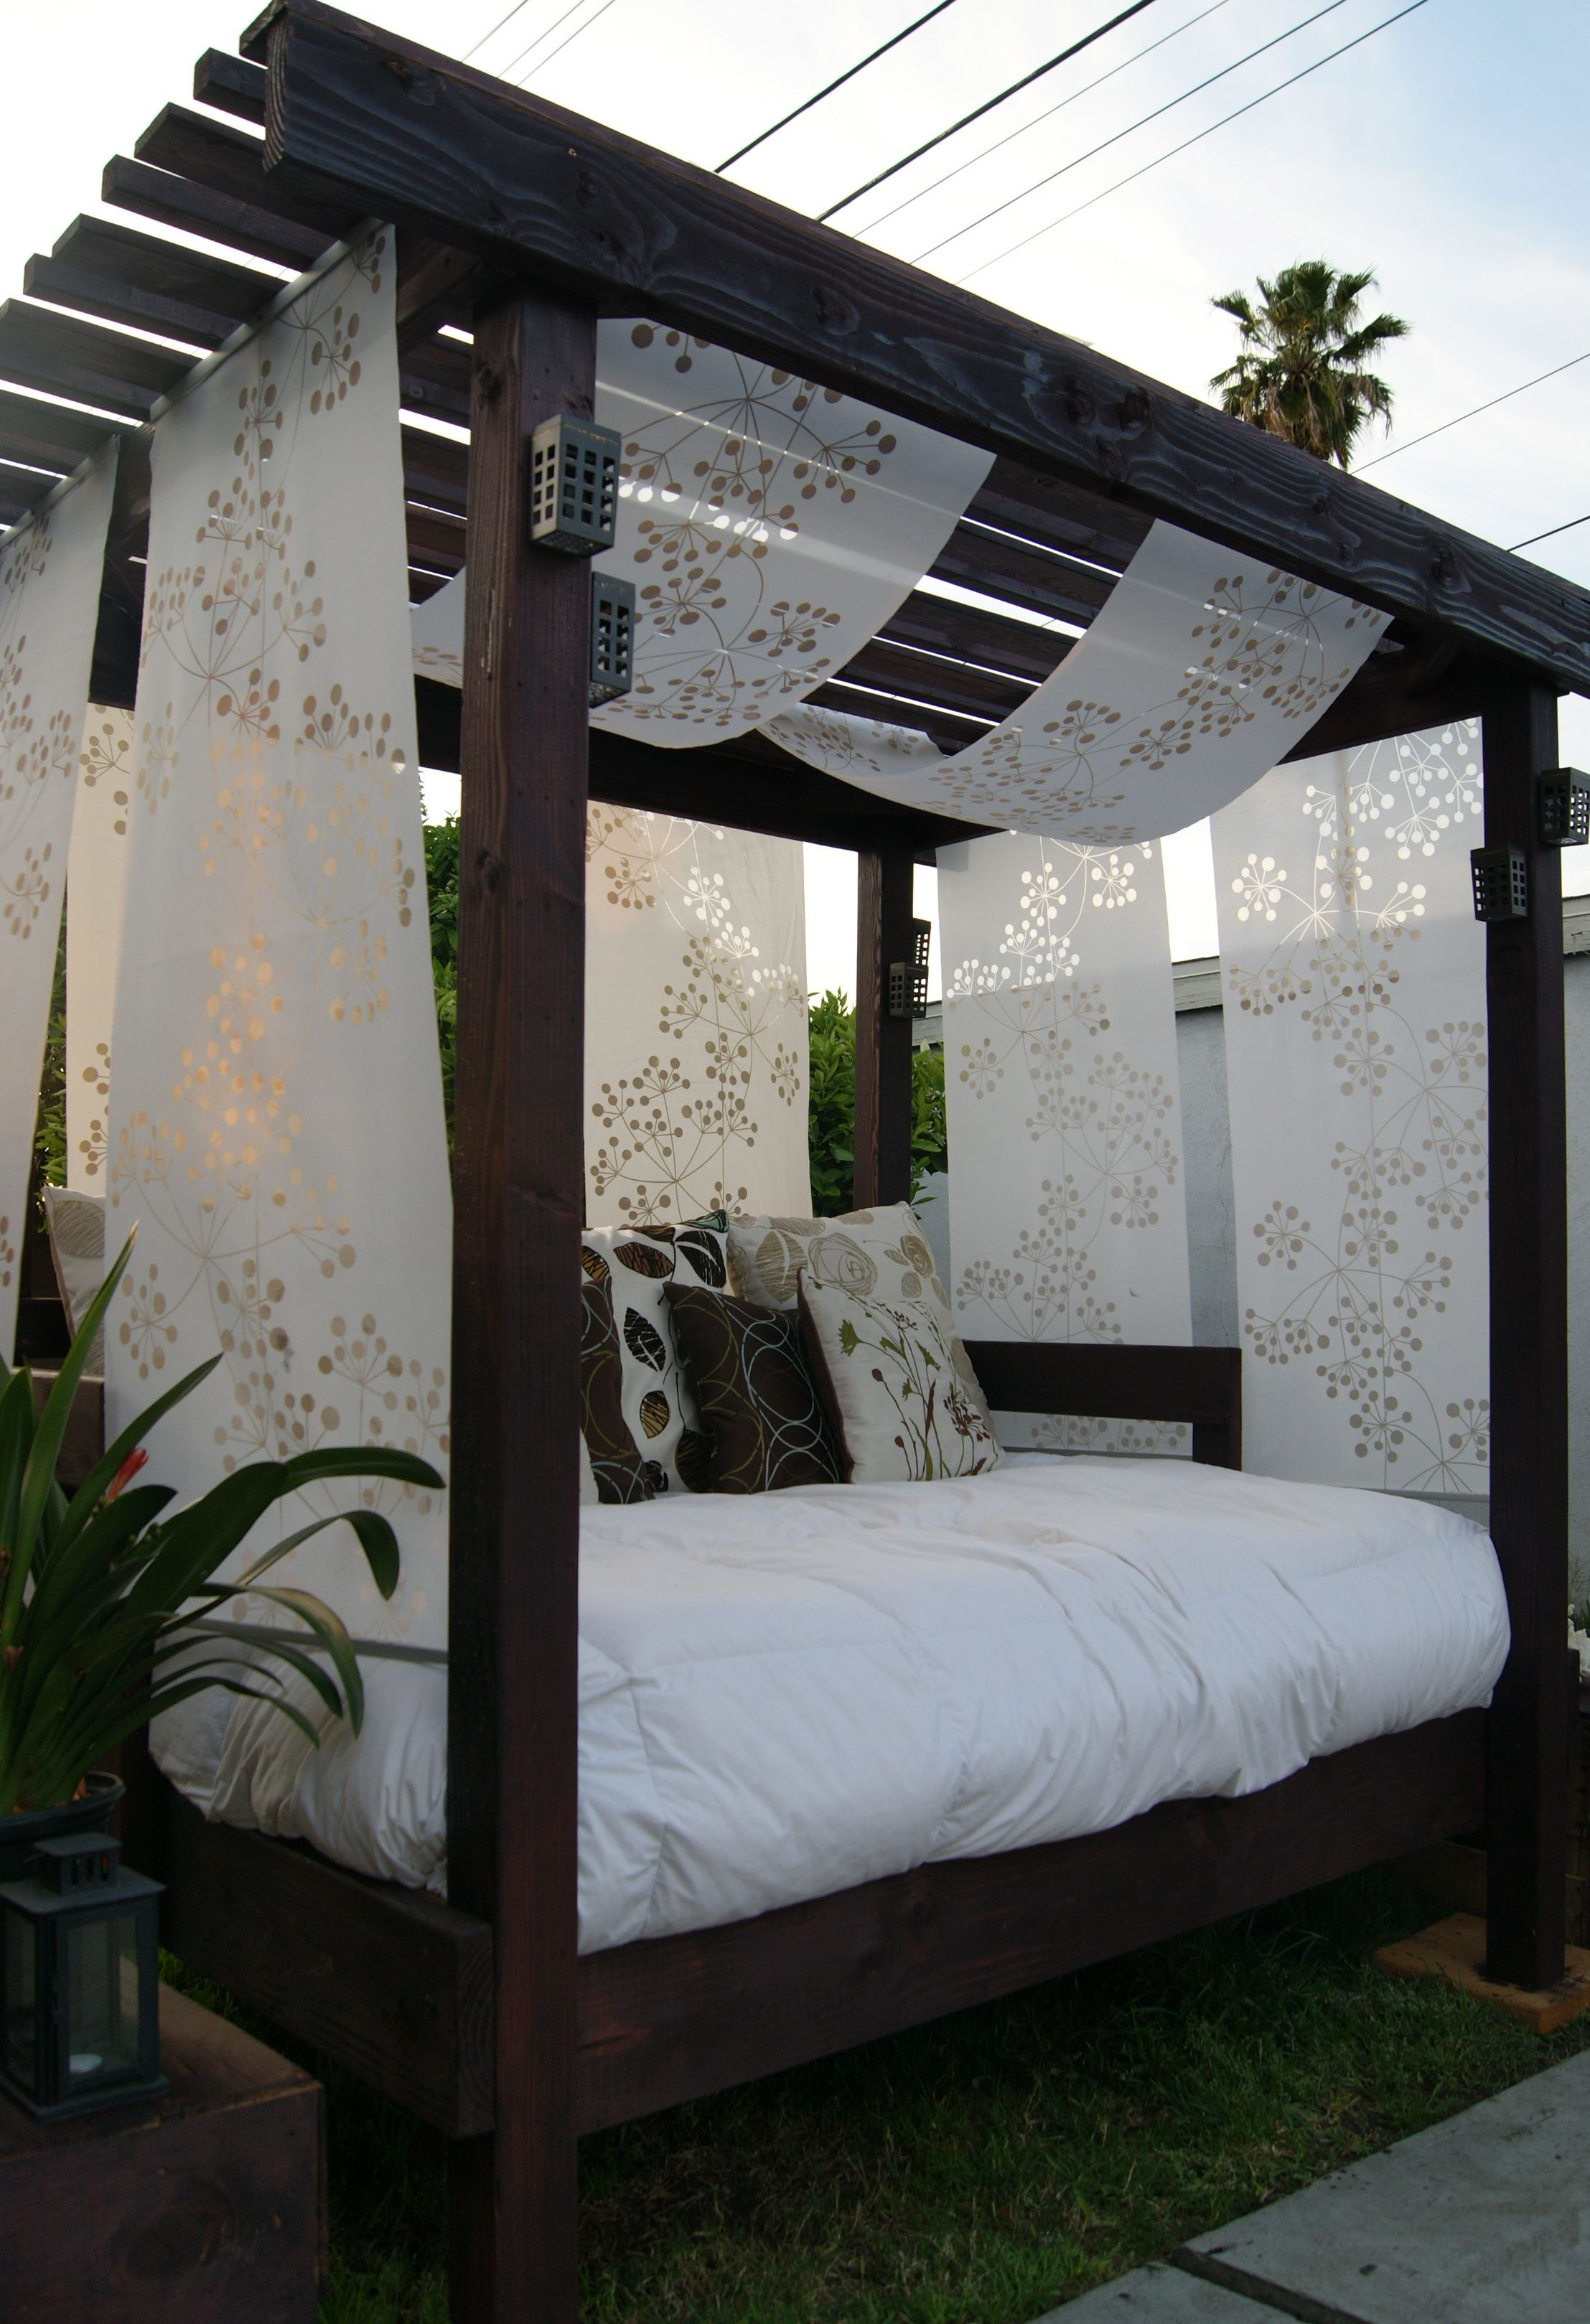 What Inspires Your Tulsa Outdoor Living Space? | Outdoor ... on Living Spaces Outdoor Daybed id=67731